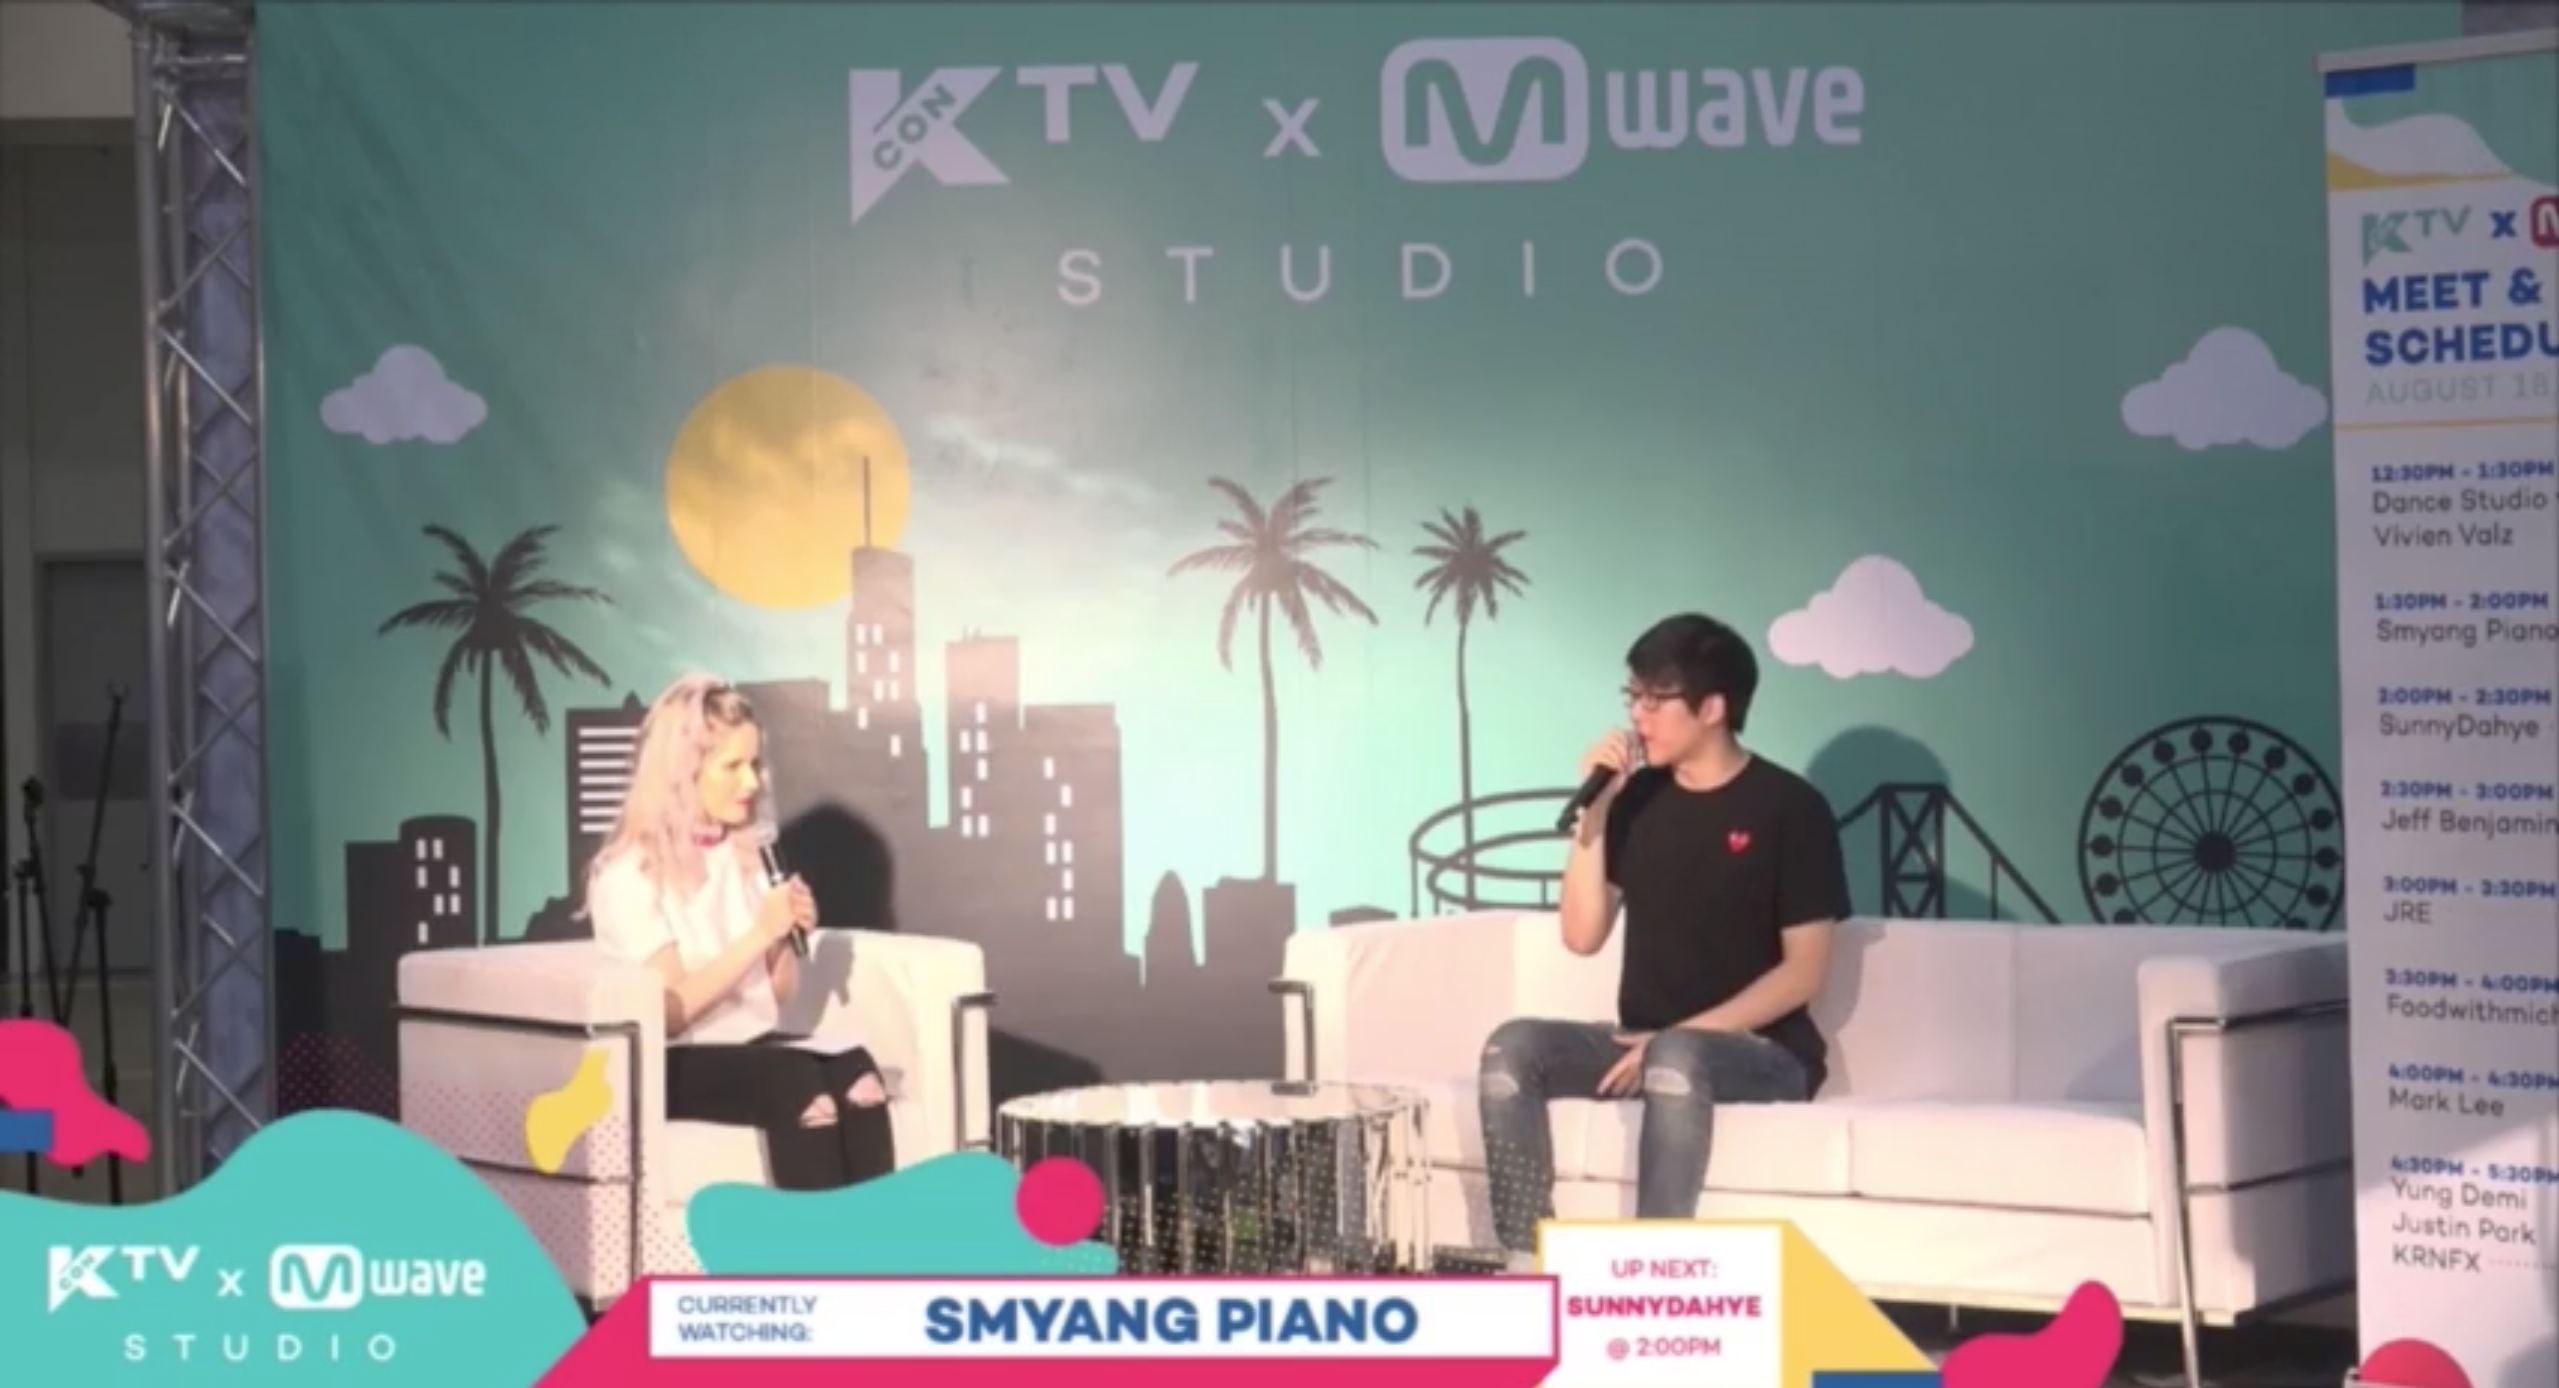 [#KCON17LA] Smyang Piano Reveals Himself For The First Time + Talks About His Rise To Fame on YouTube